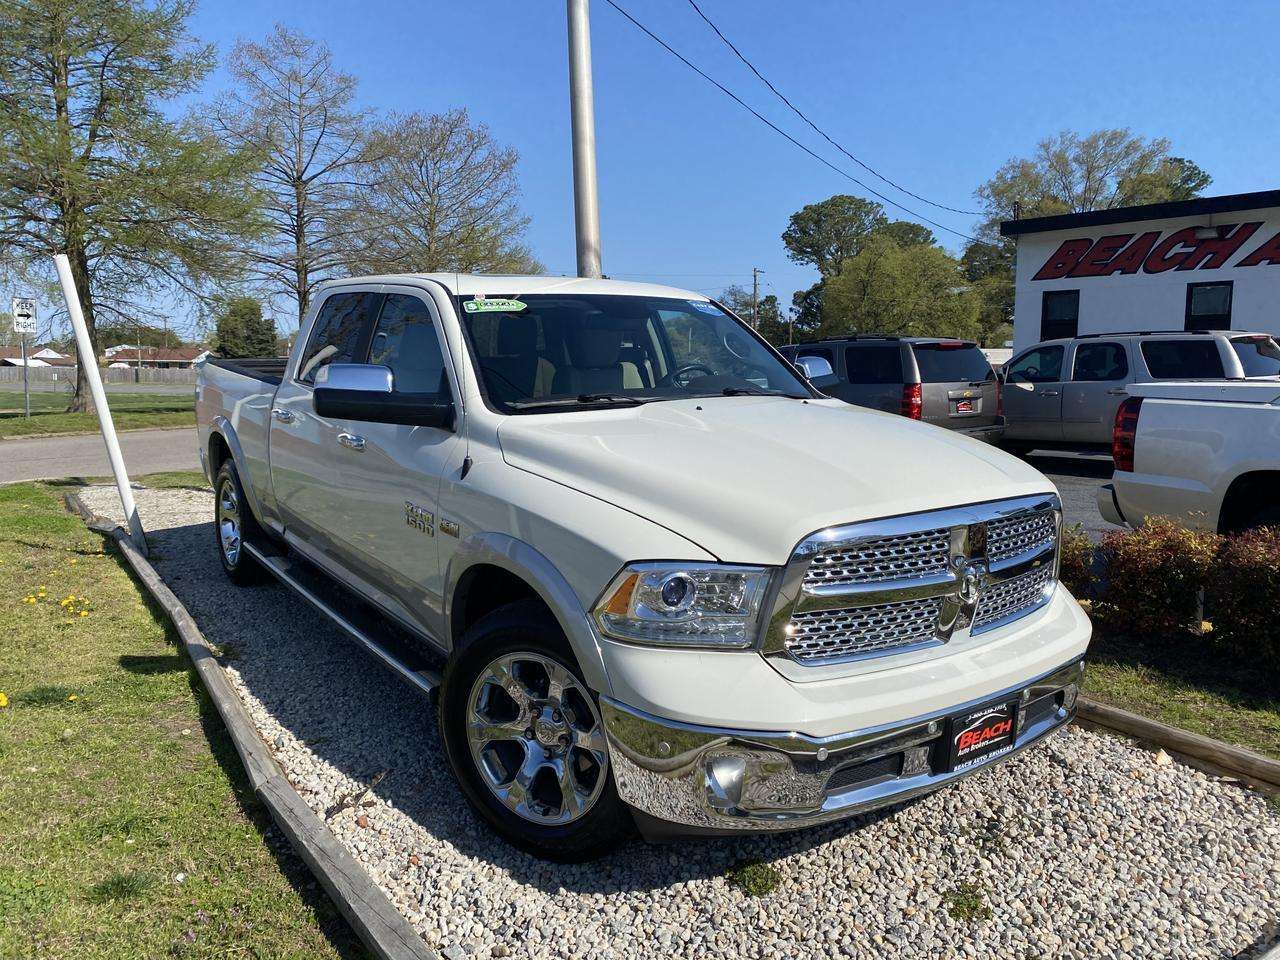 2017 DODGE RAM 1500 LARAMIE CREW CAB 4X4, WARRANTY, LEATHER, LONGBED, HEATED/COOLED SEATS, NAV, BACKUP CAM, CLEAN! Norfolk VA